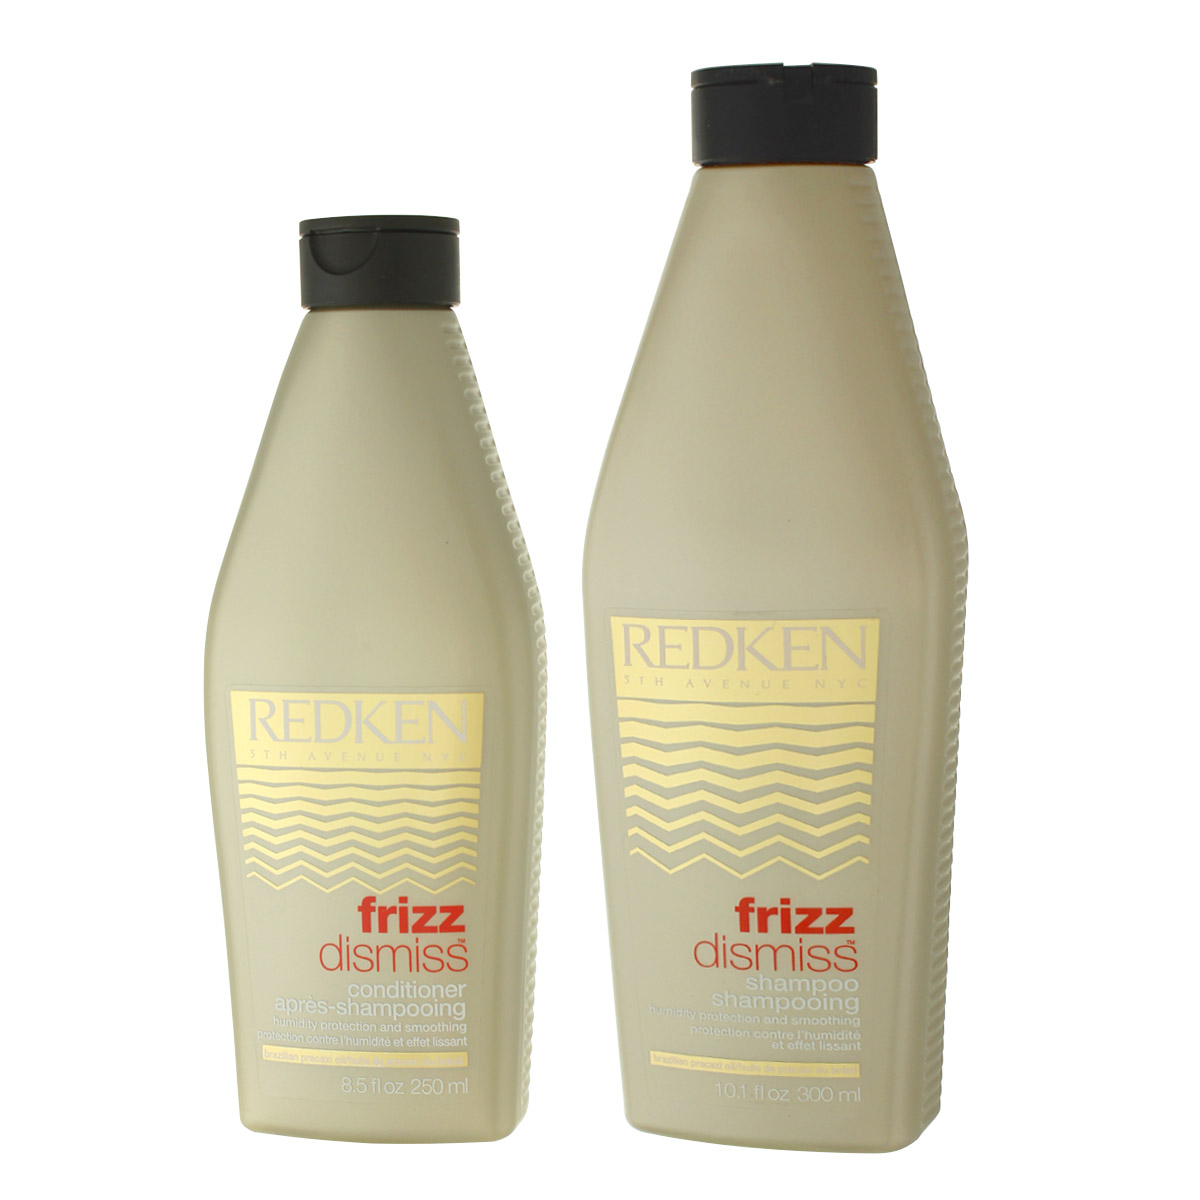 Redken Frizz Dismiss Shampoo 300 ml + Conditioner 250 ml